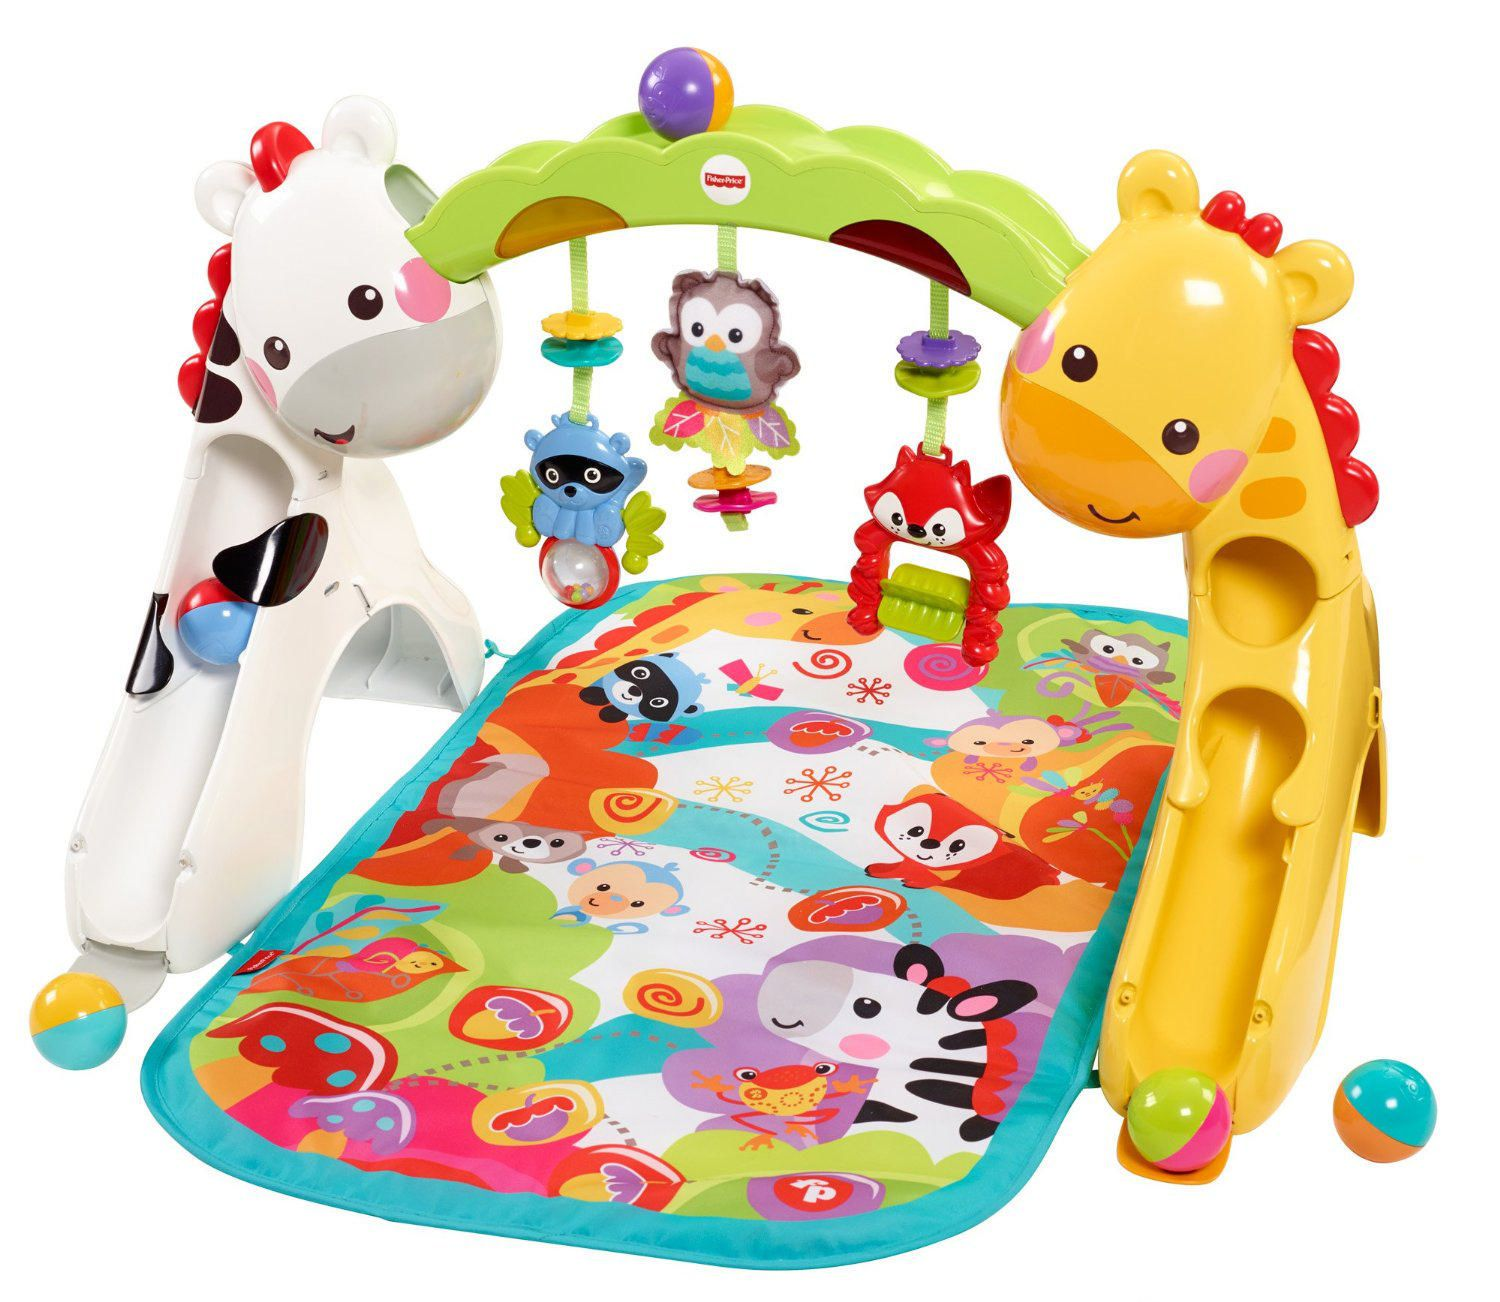 gym activity music play baby ct soft s mat of with products yonder wild blue toys specifications